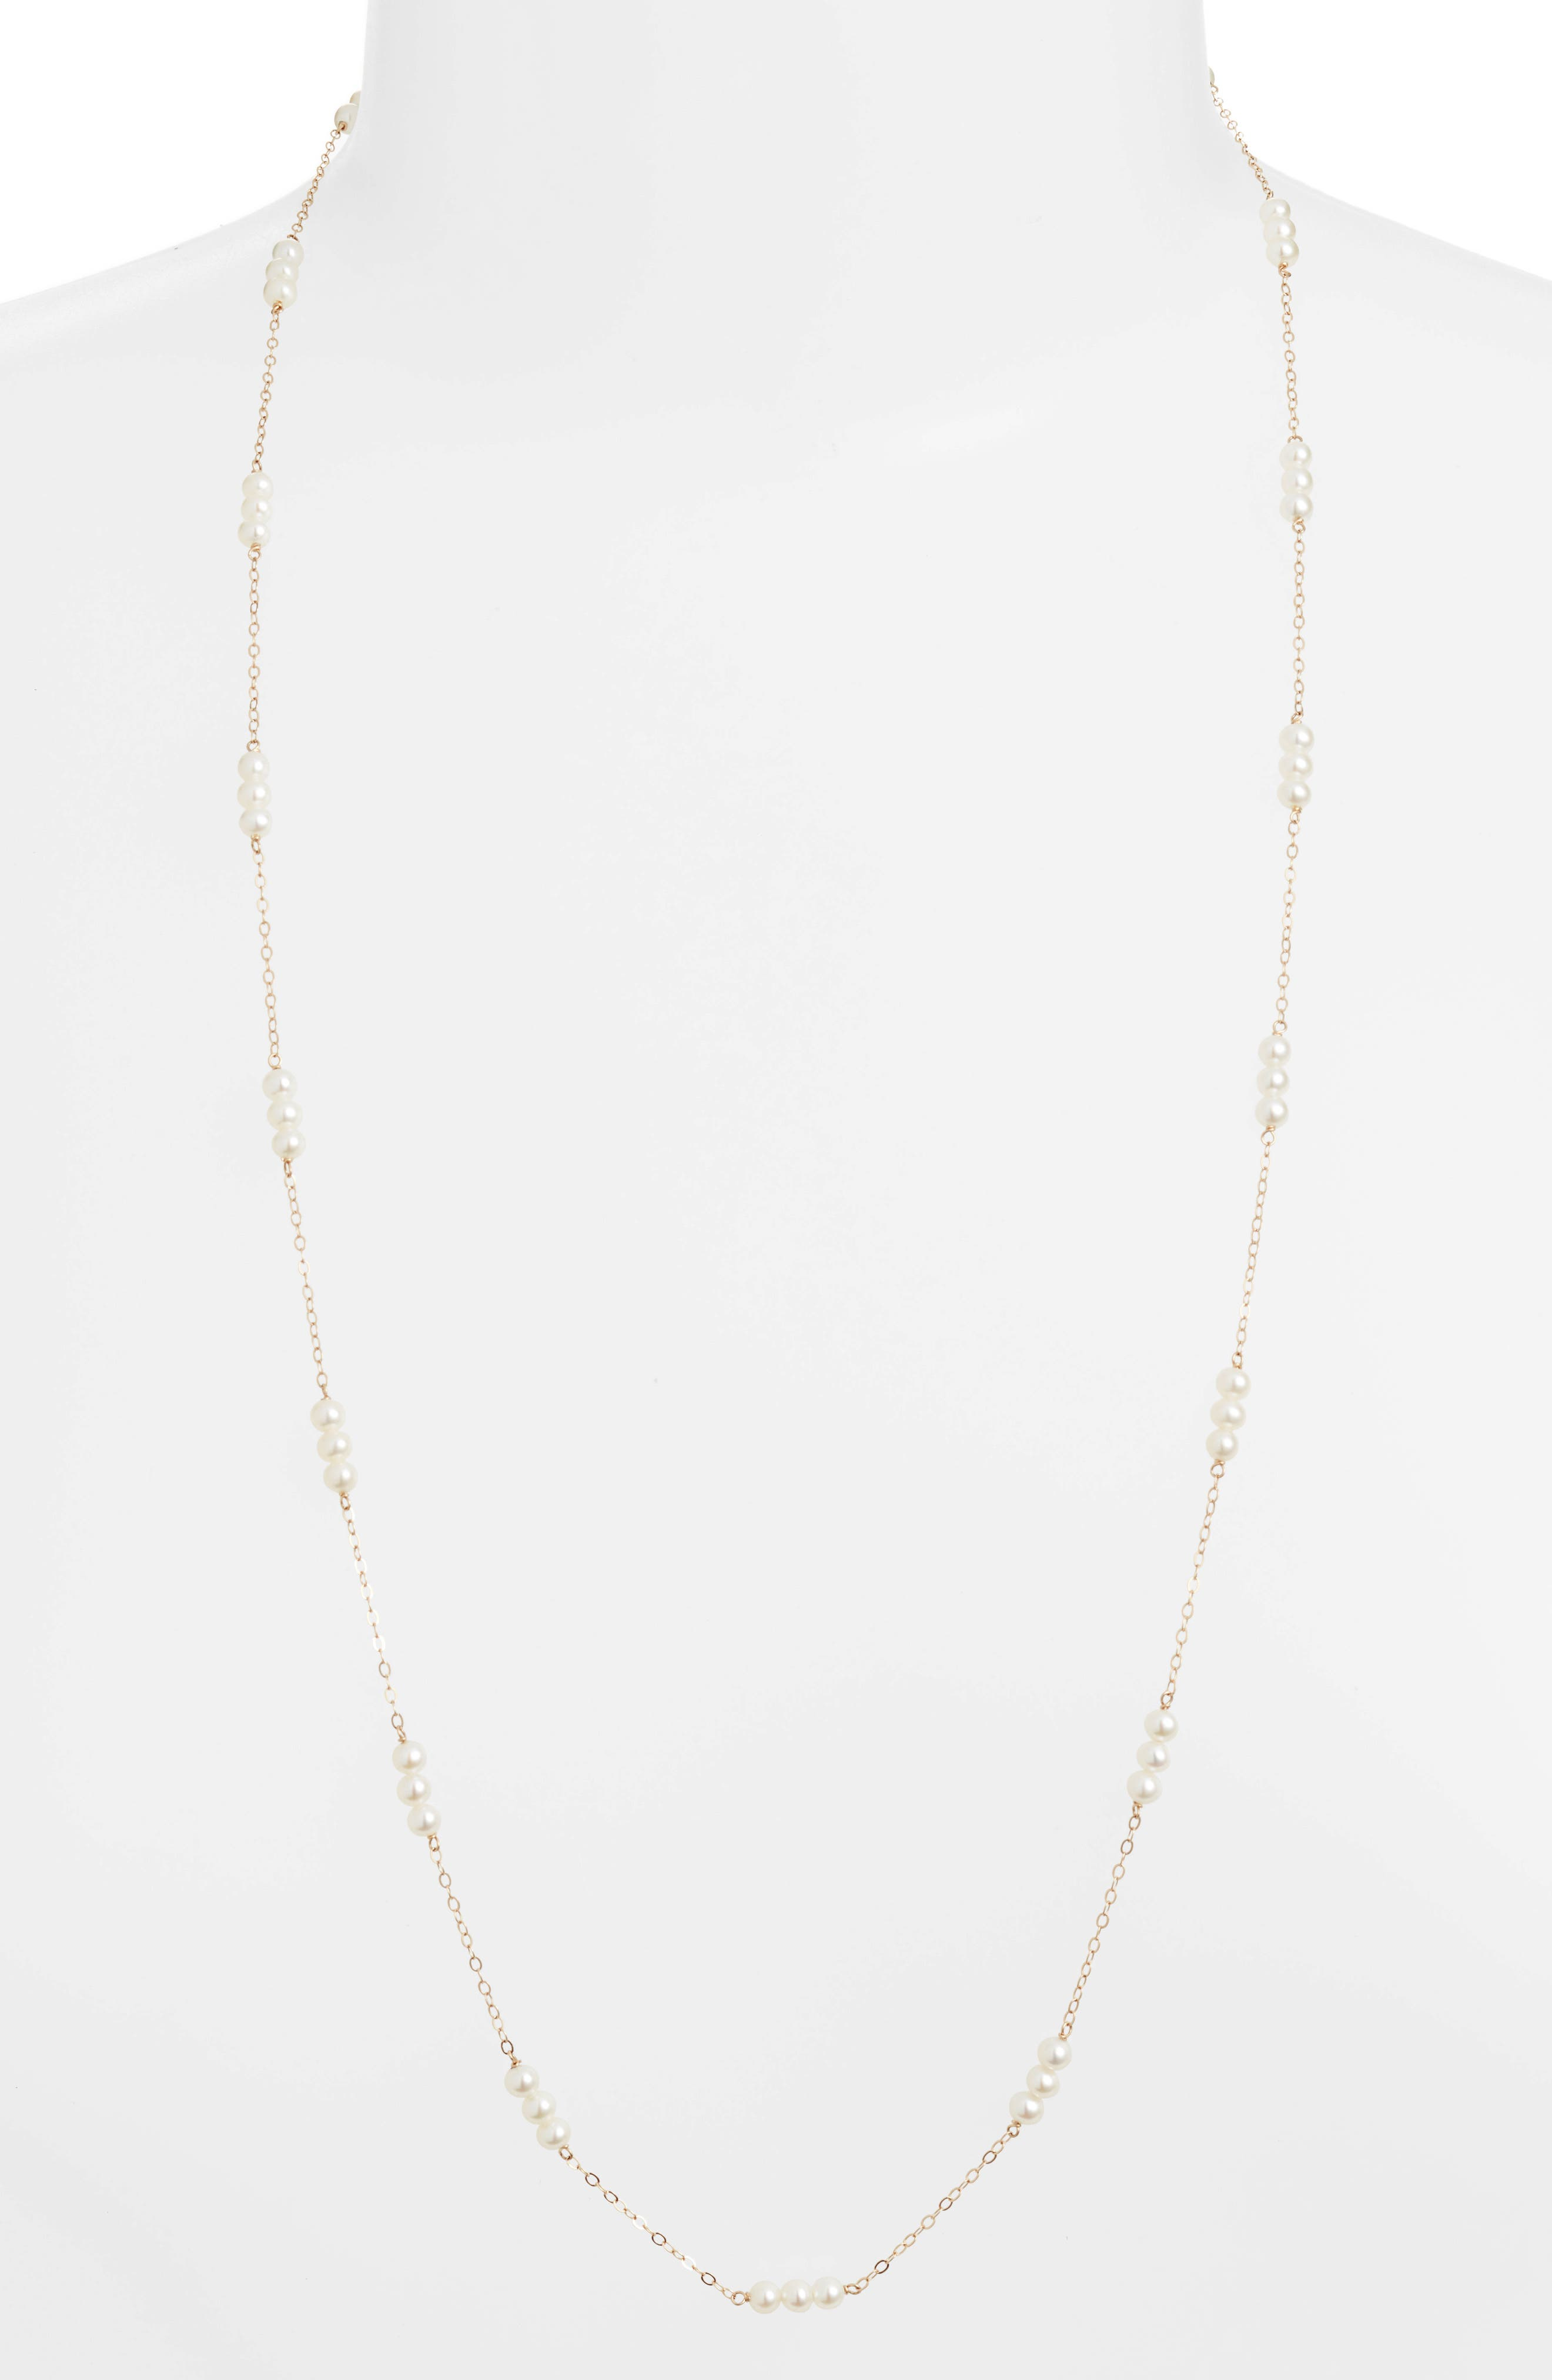 Pearl Triplet Necklace,                             Main thumbnail 1, color,                             Yellow Gold/ White Pearl